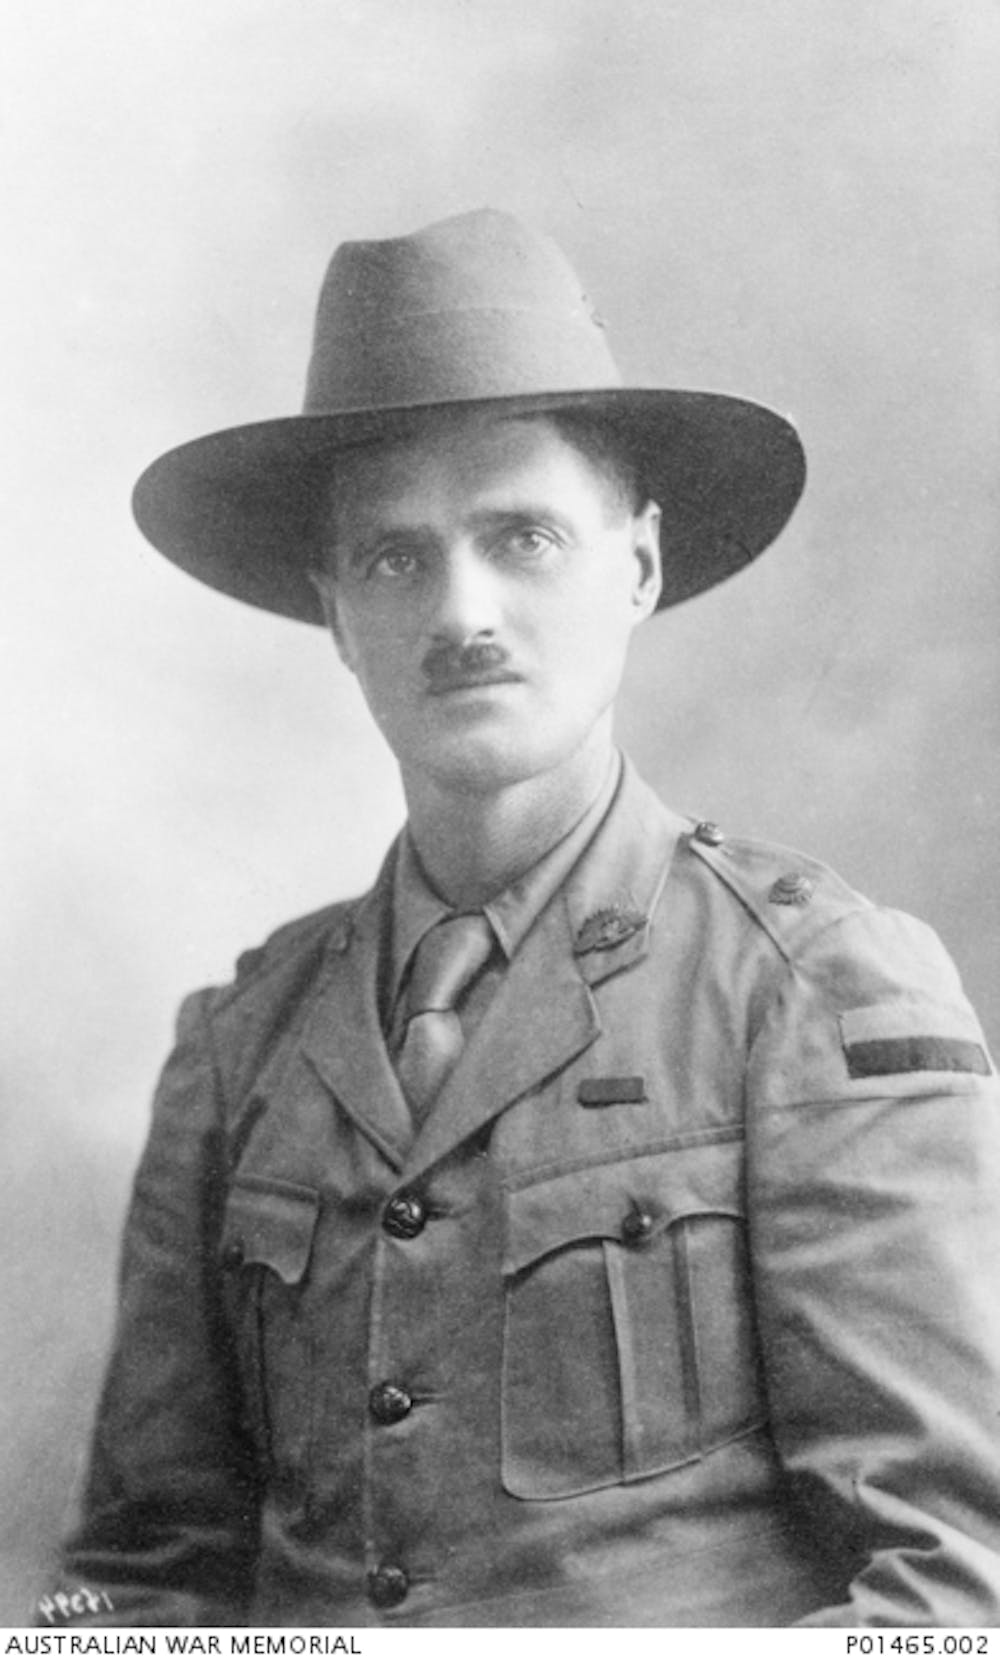 A hundred in a million: our obsession with the Victoria Cross